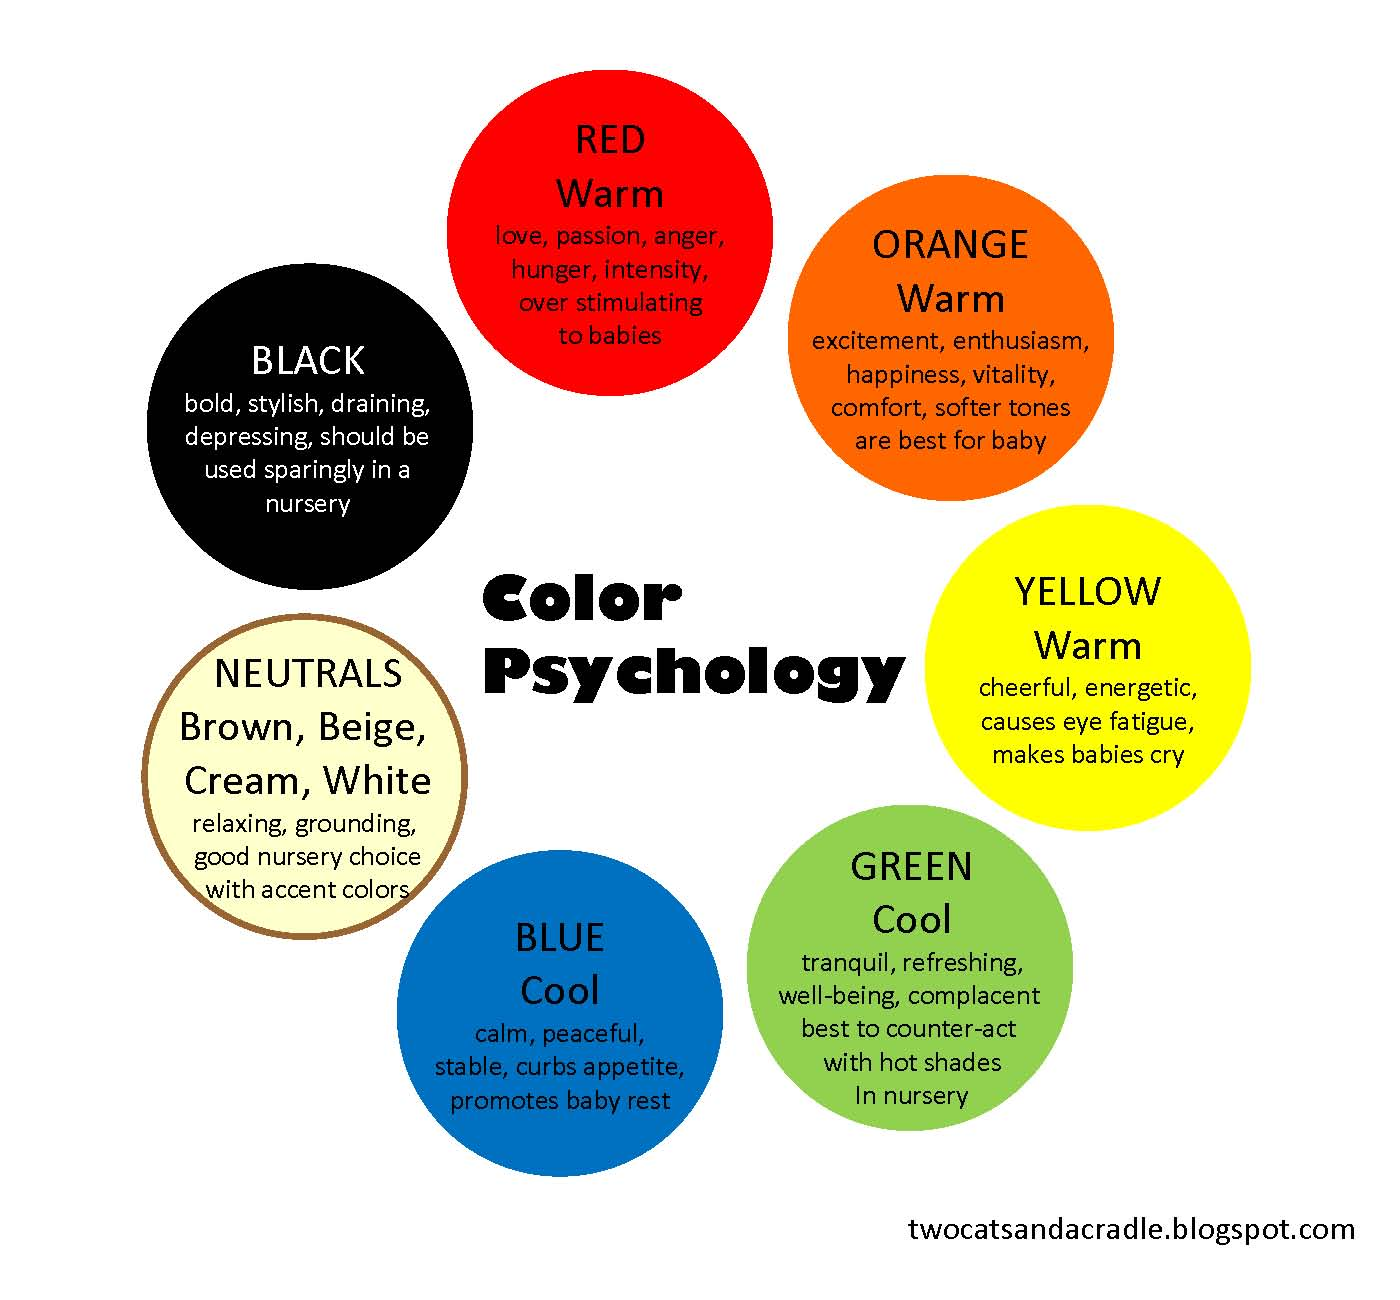 Captivating colors of feelings chart pictures best ideas exterior fascinating color psychology moods photos best ideas exterior geenschuldenfo Image collections